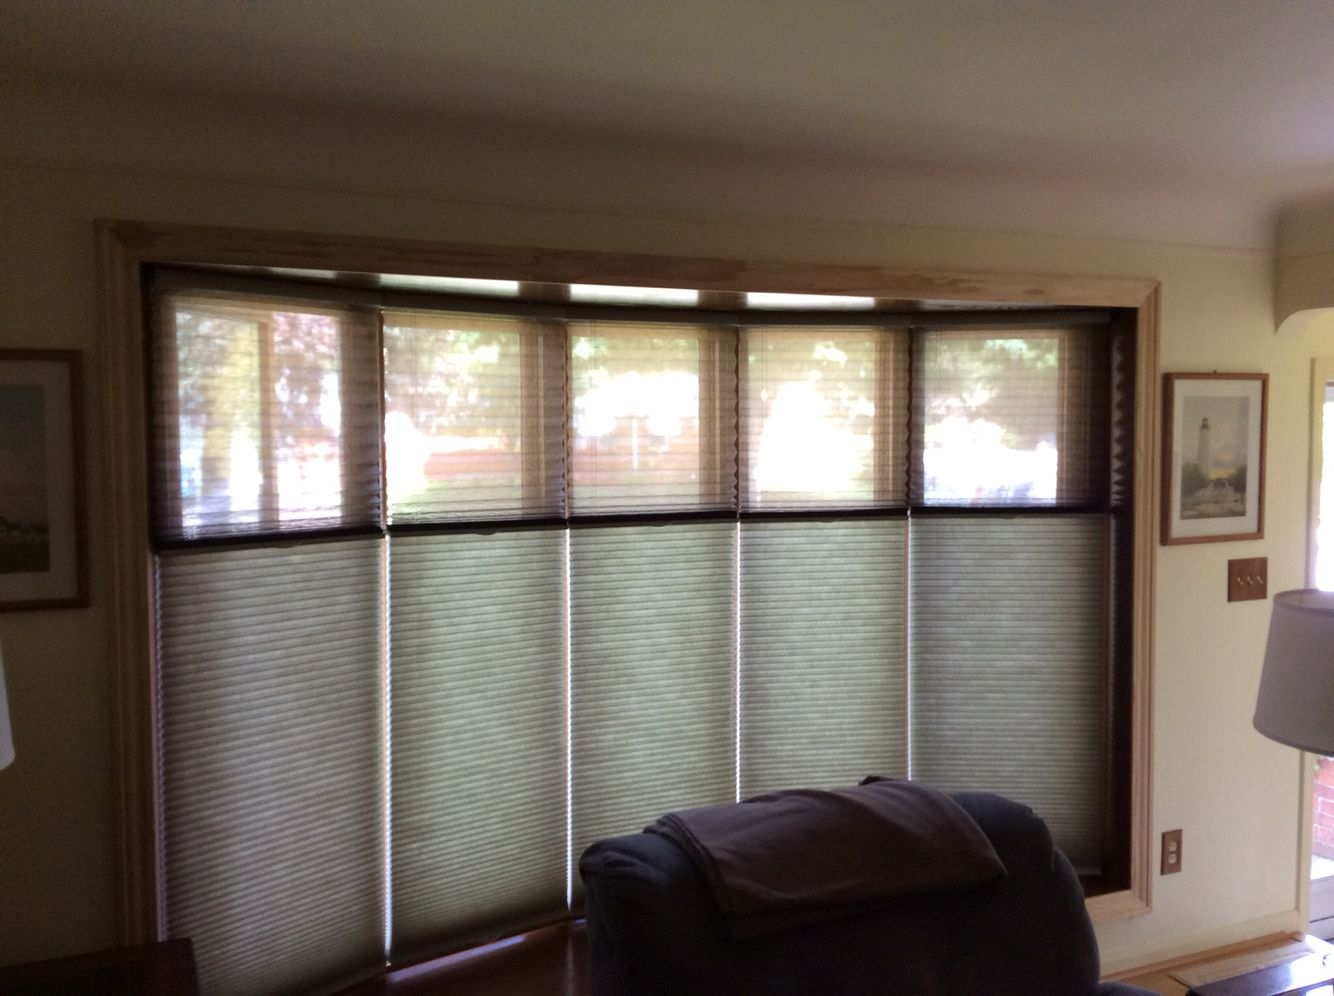 quando voc blinds blackout cellular a room pin dining ireland kathy cortina usar sabe